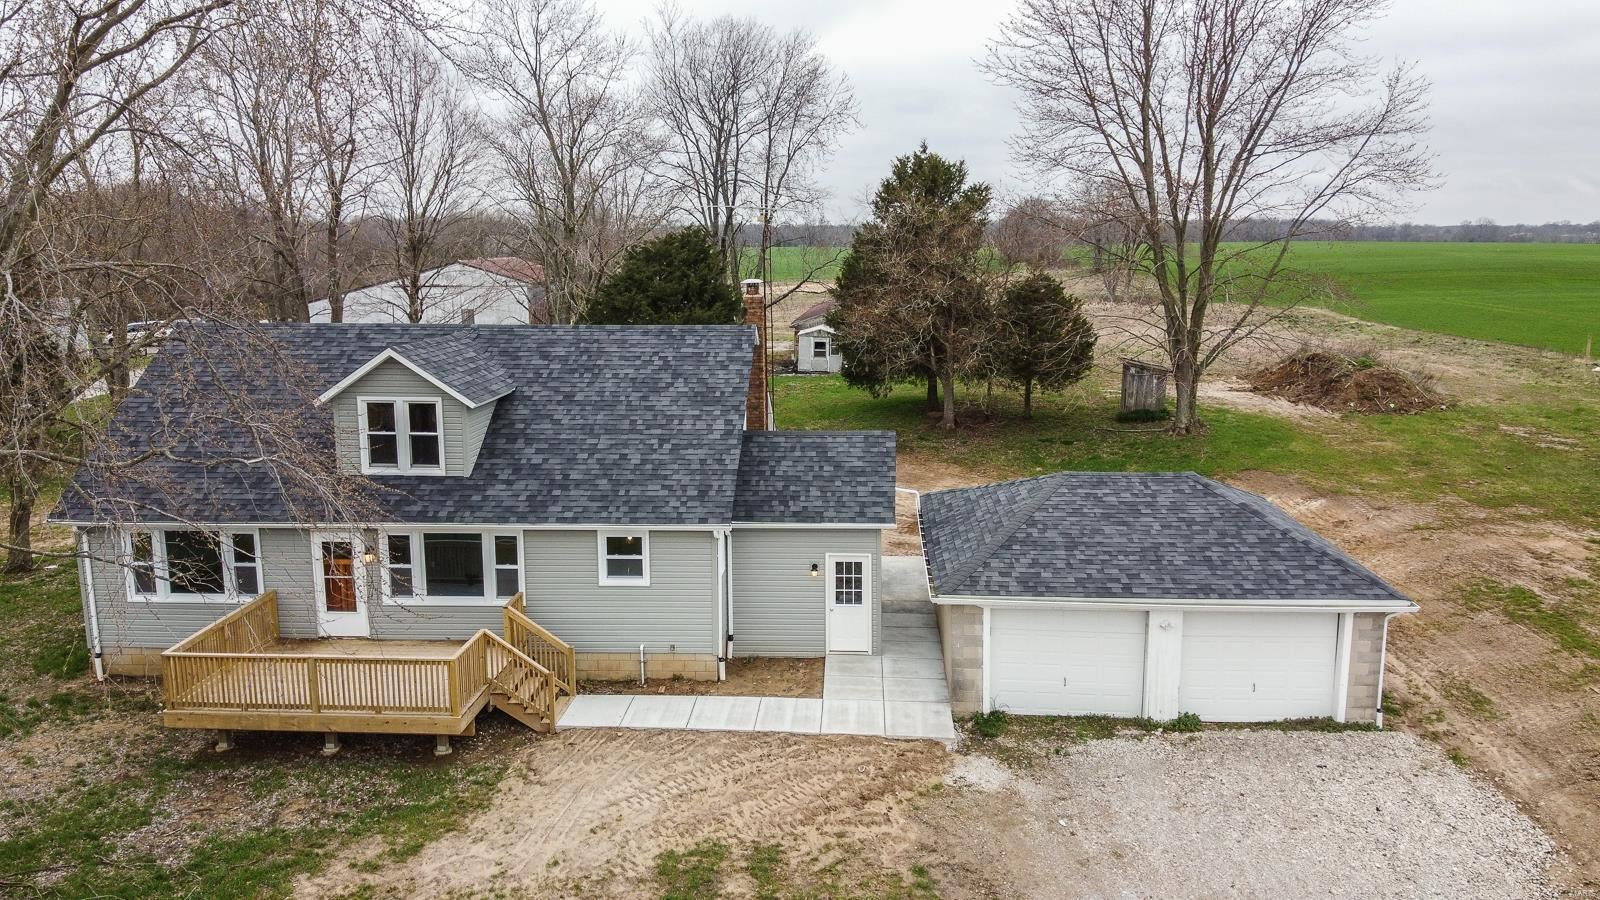 5603 Snapdragon, Coulterville, IL 62237 - MLS#: 20019359